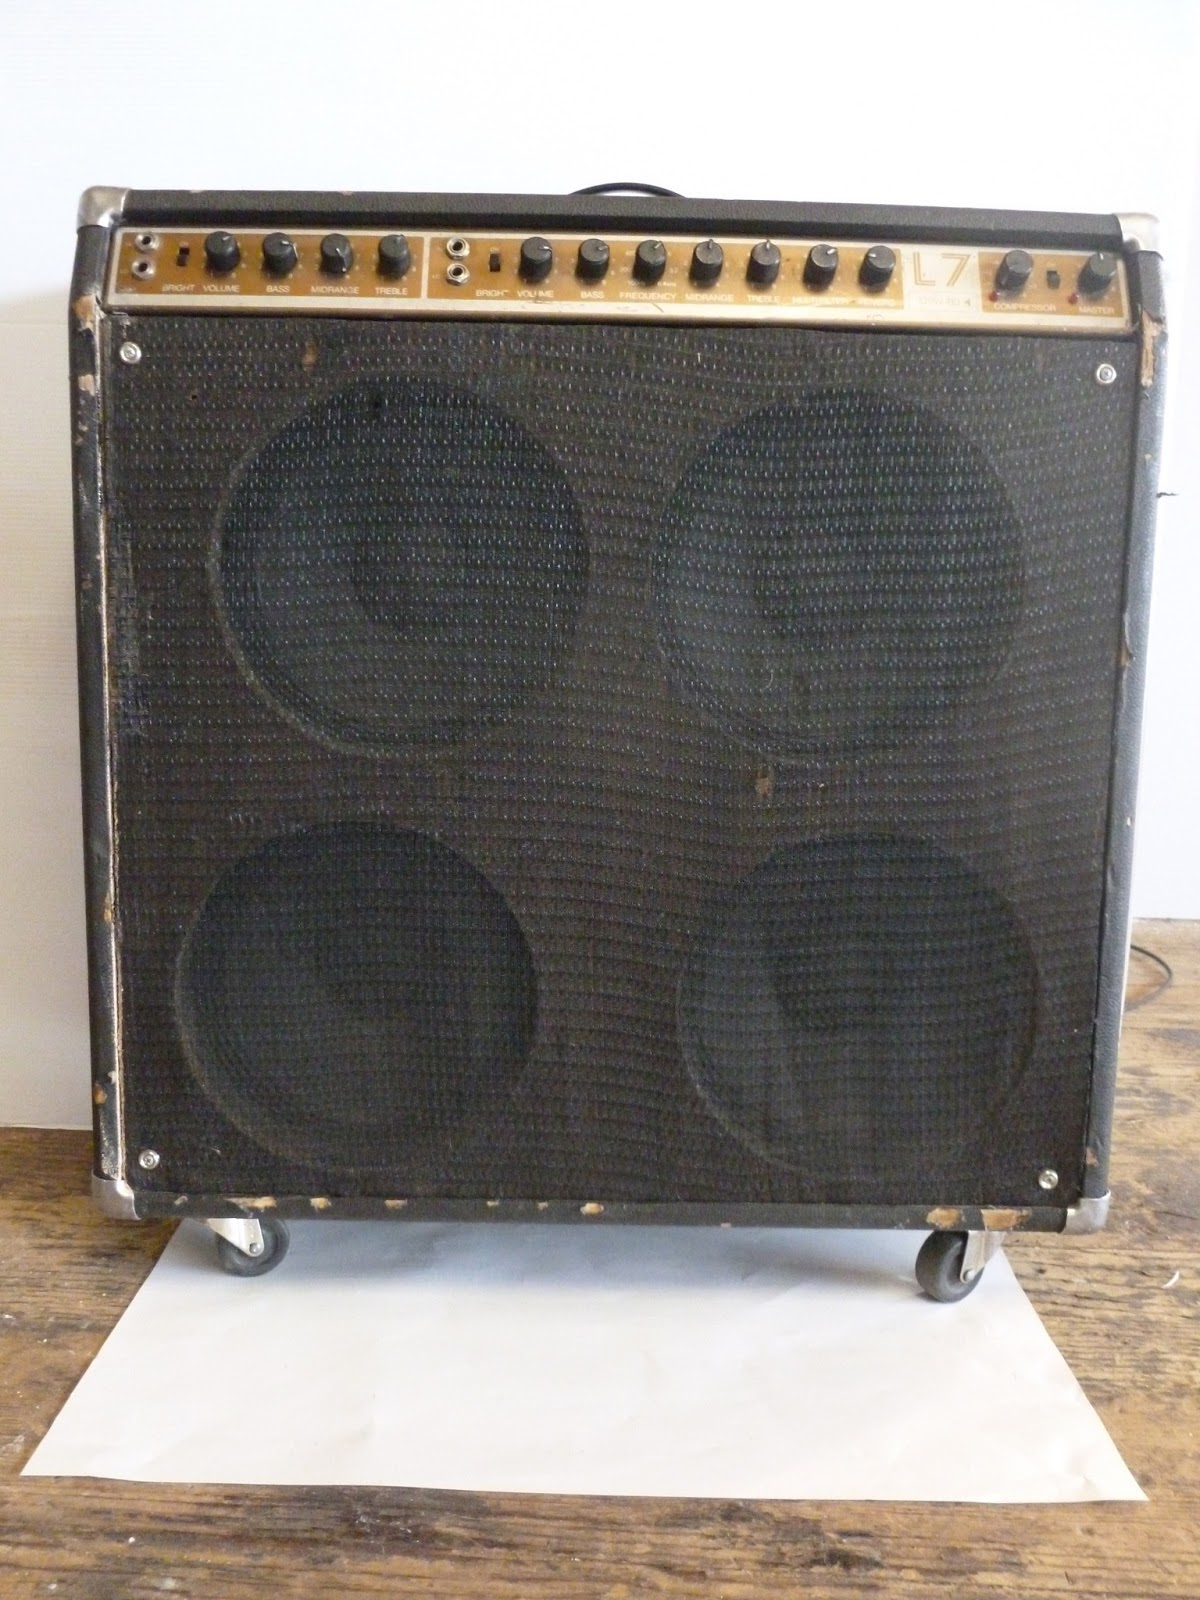 lab series amp for sale vintage lab series l7 100 watt 4 x 10 combo amp for sale. Black Bedroom Furniture Sets. Home Design Ideas